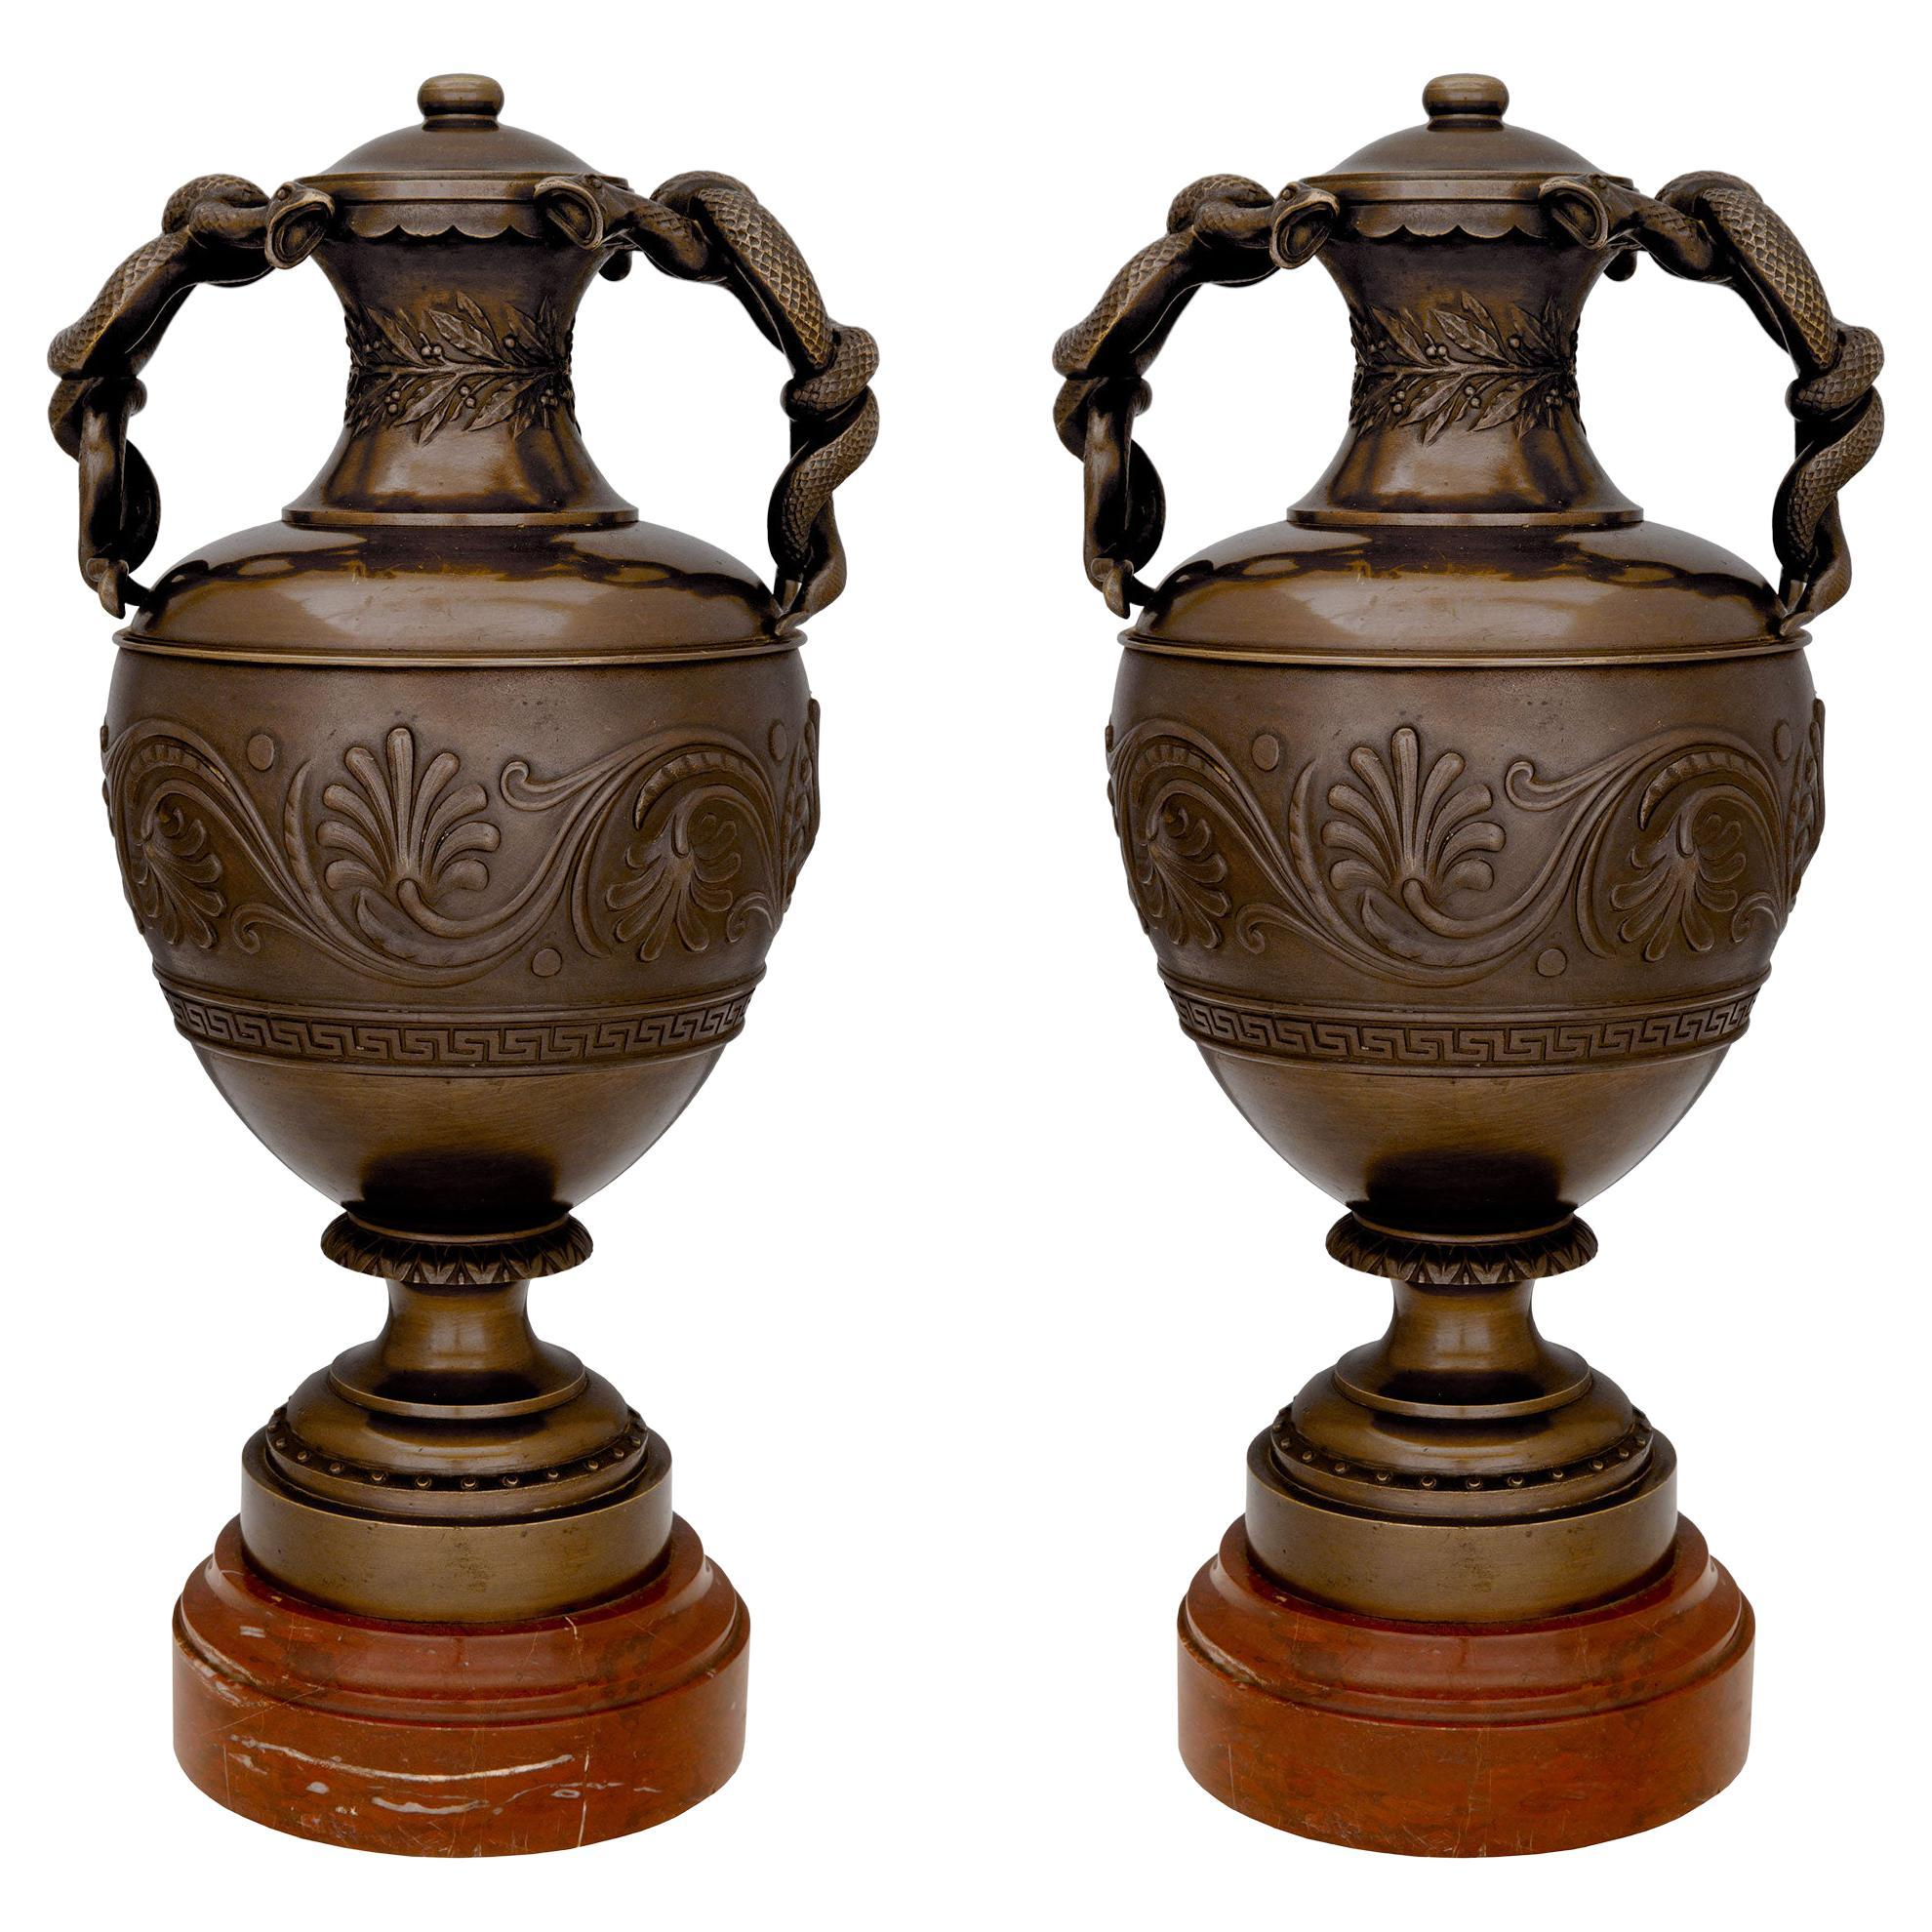 French 19th Century Neoclassical Style Patinated Bronze and Marble Urns